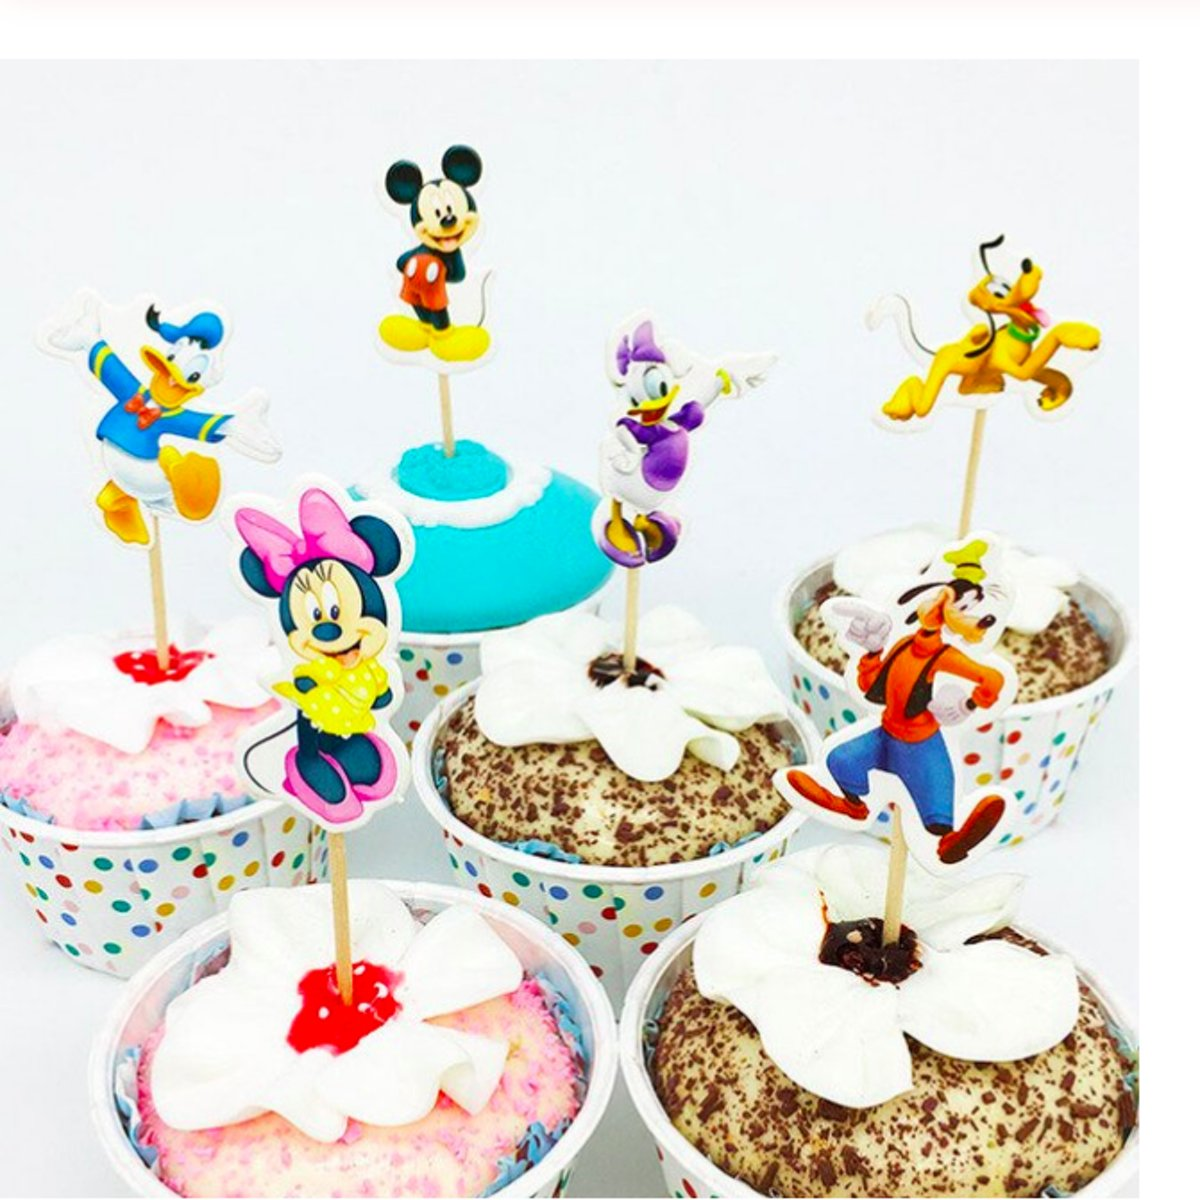 ProductsGoods - 48 x Leuke Mickey Mouse cocktailprikkers